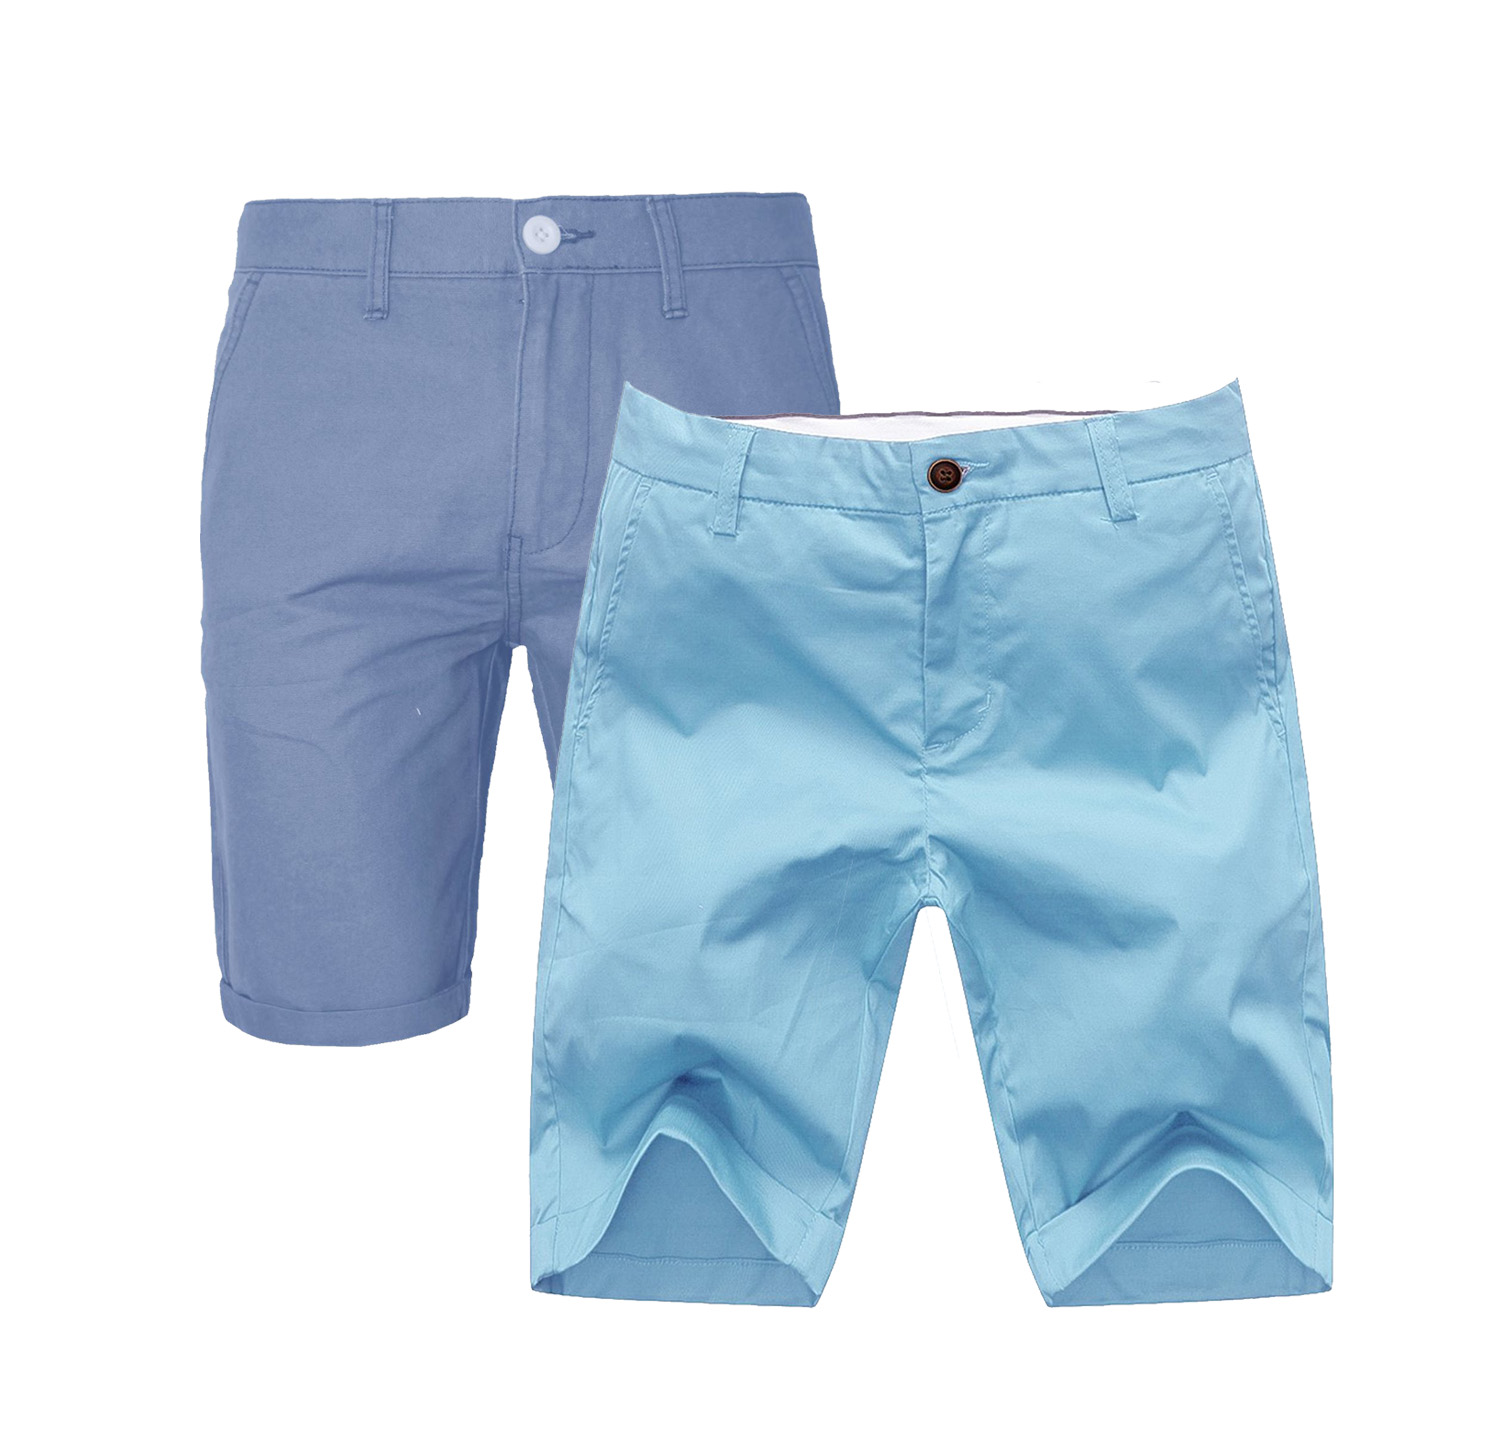 Mens slim fit shorts with pockets